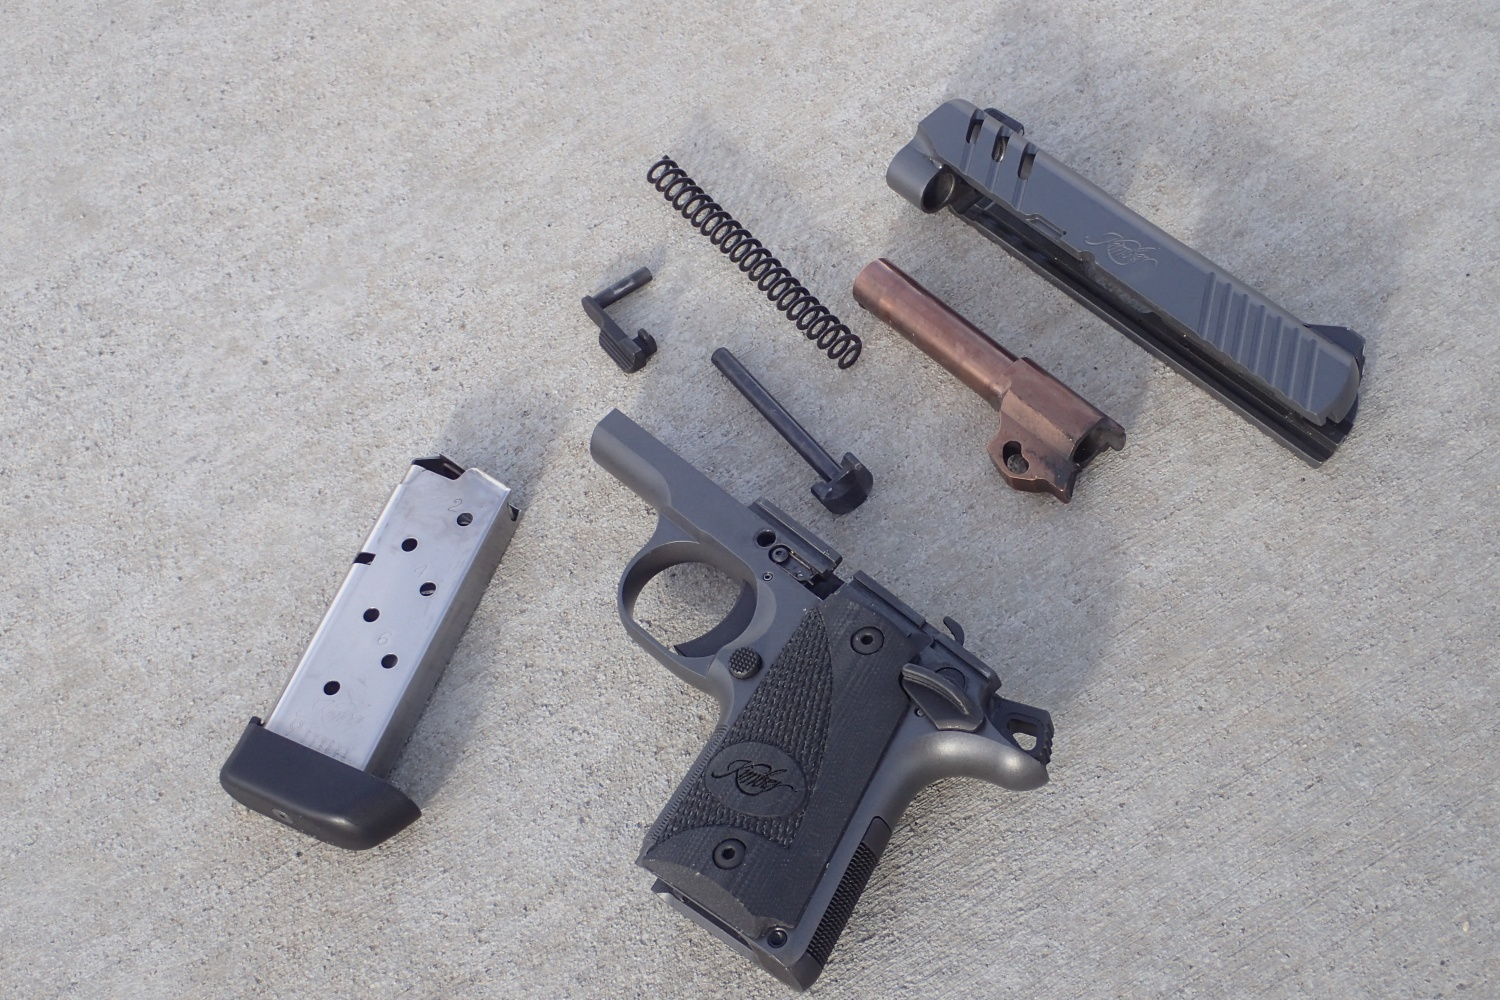 TFB Review: Kimber Micro 9 ESV -The Firearm Blog